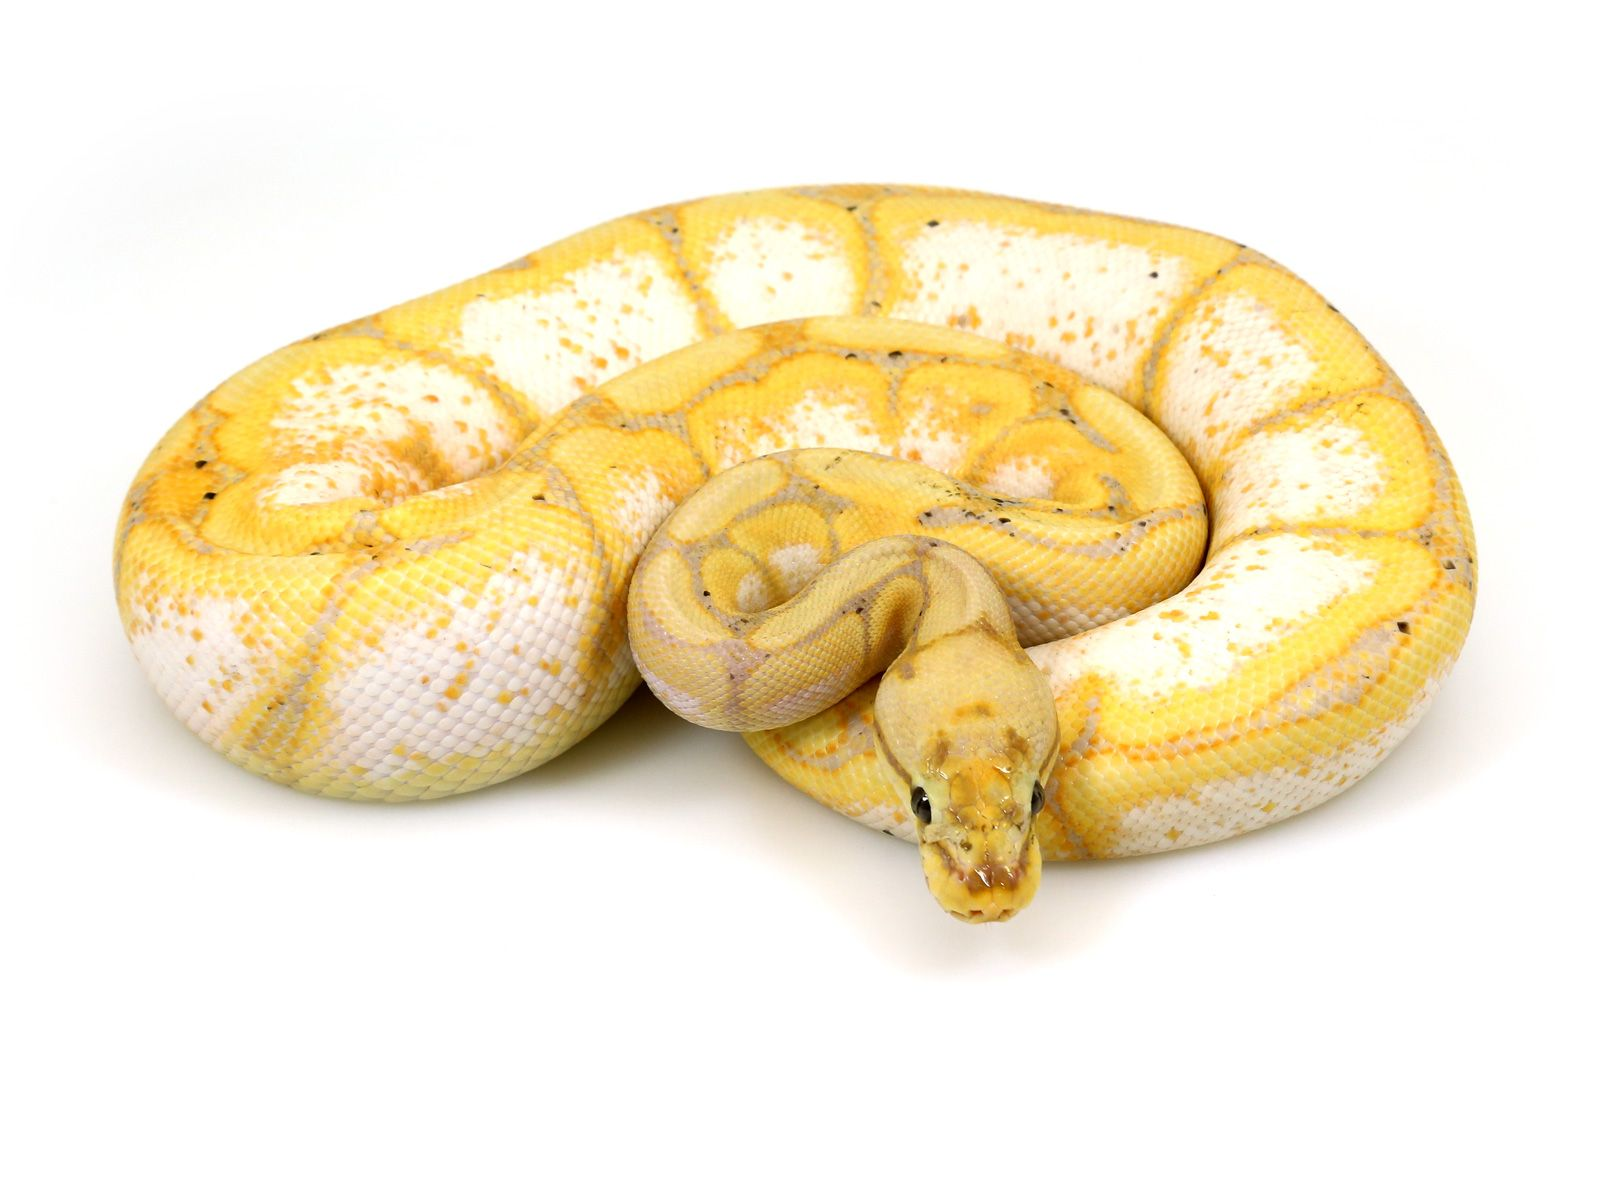 Banana spider ball python - photo#4